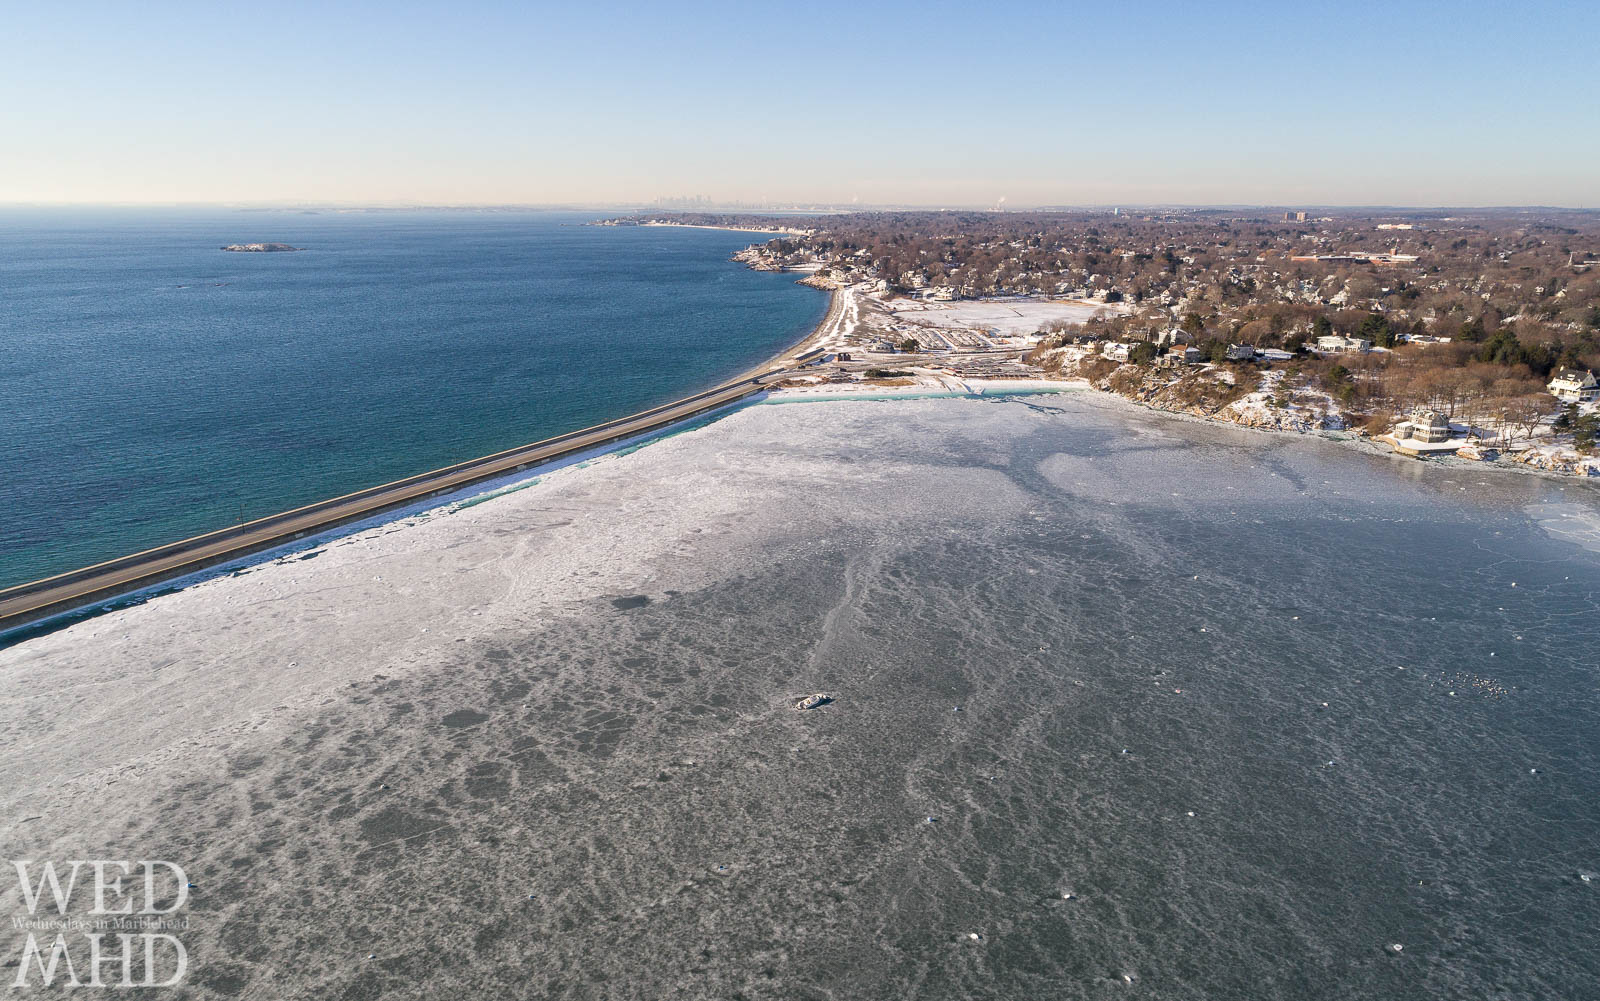 Looking down on a frozen Marblehead Harbor after weeks of arctic conditions reveals a boat trapped in the ice. The ice is contrasted with the deep blue ocean water.